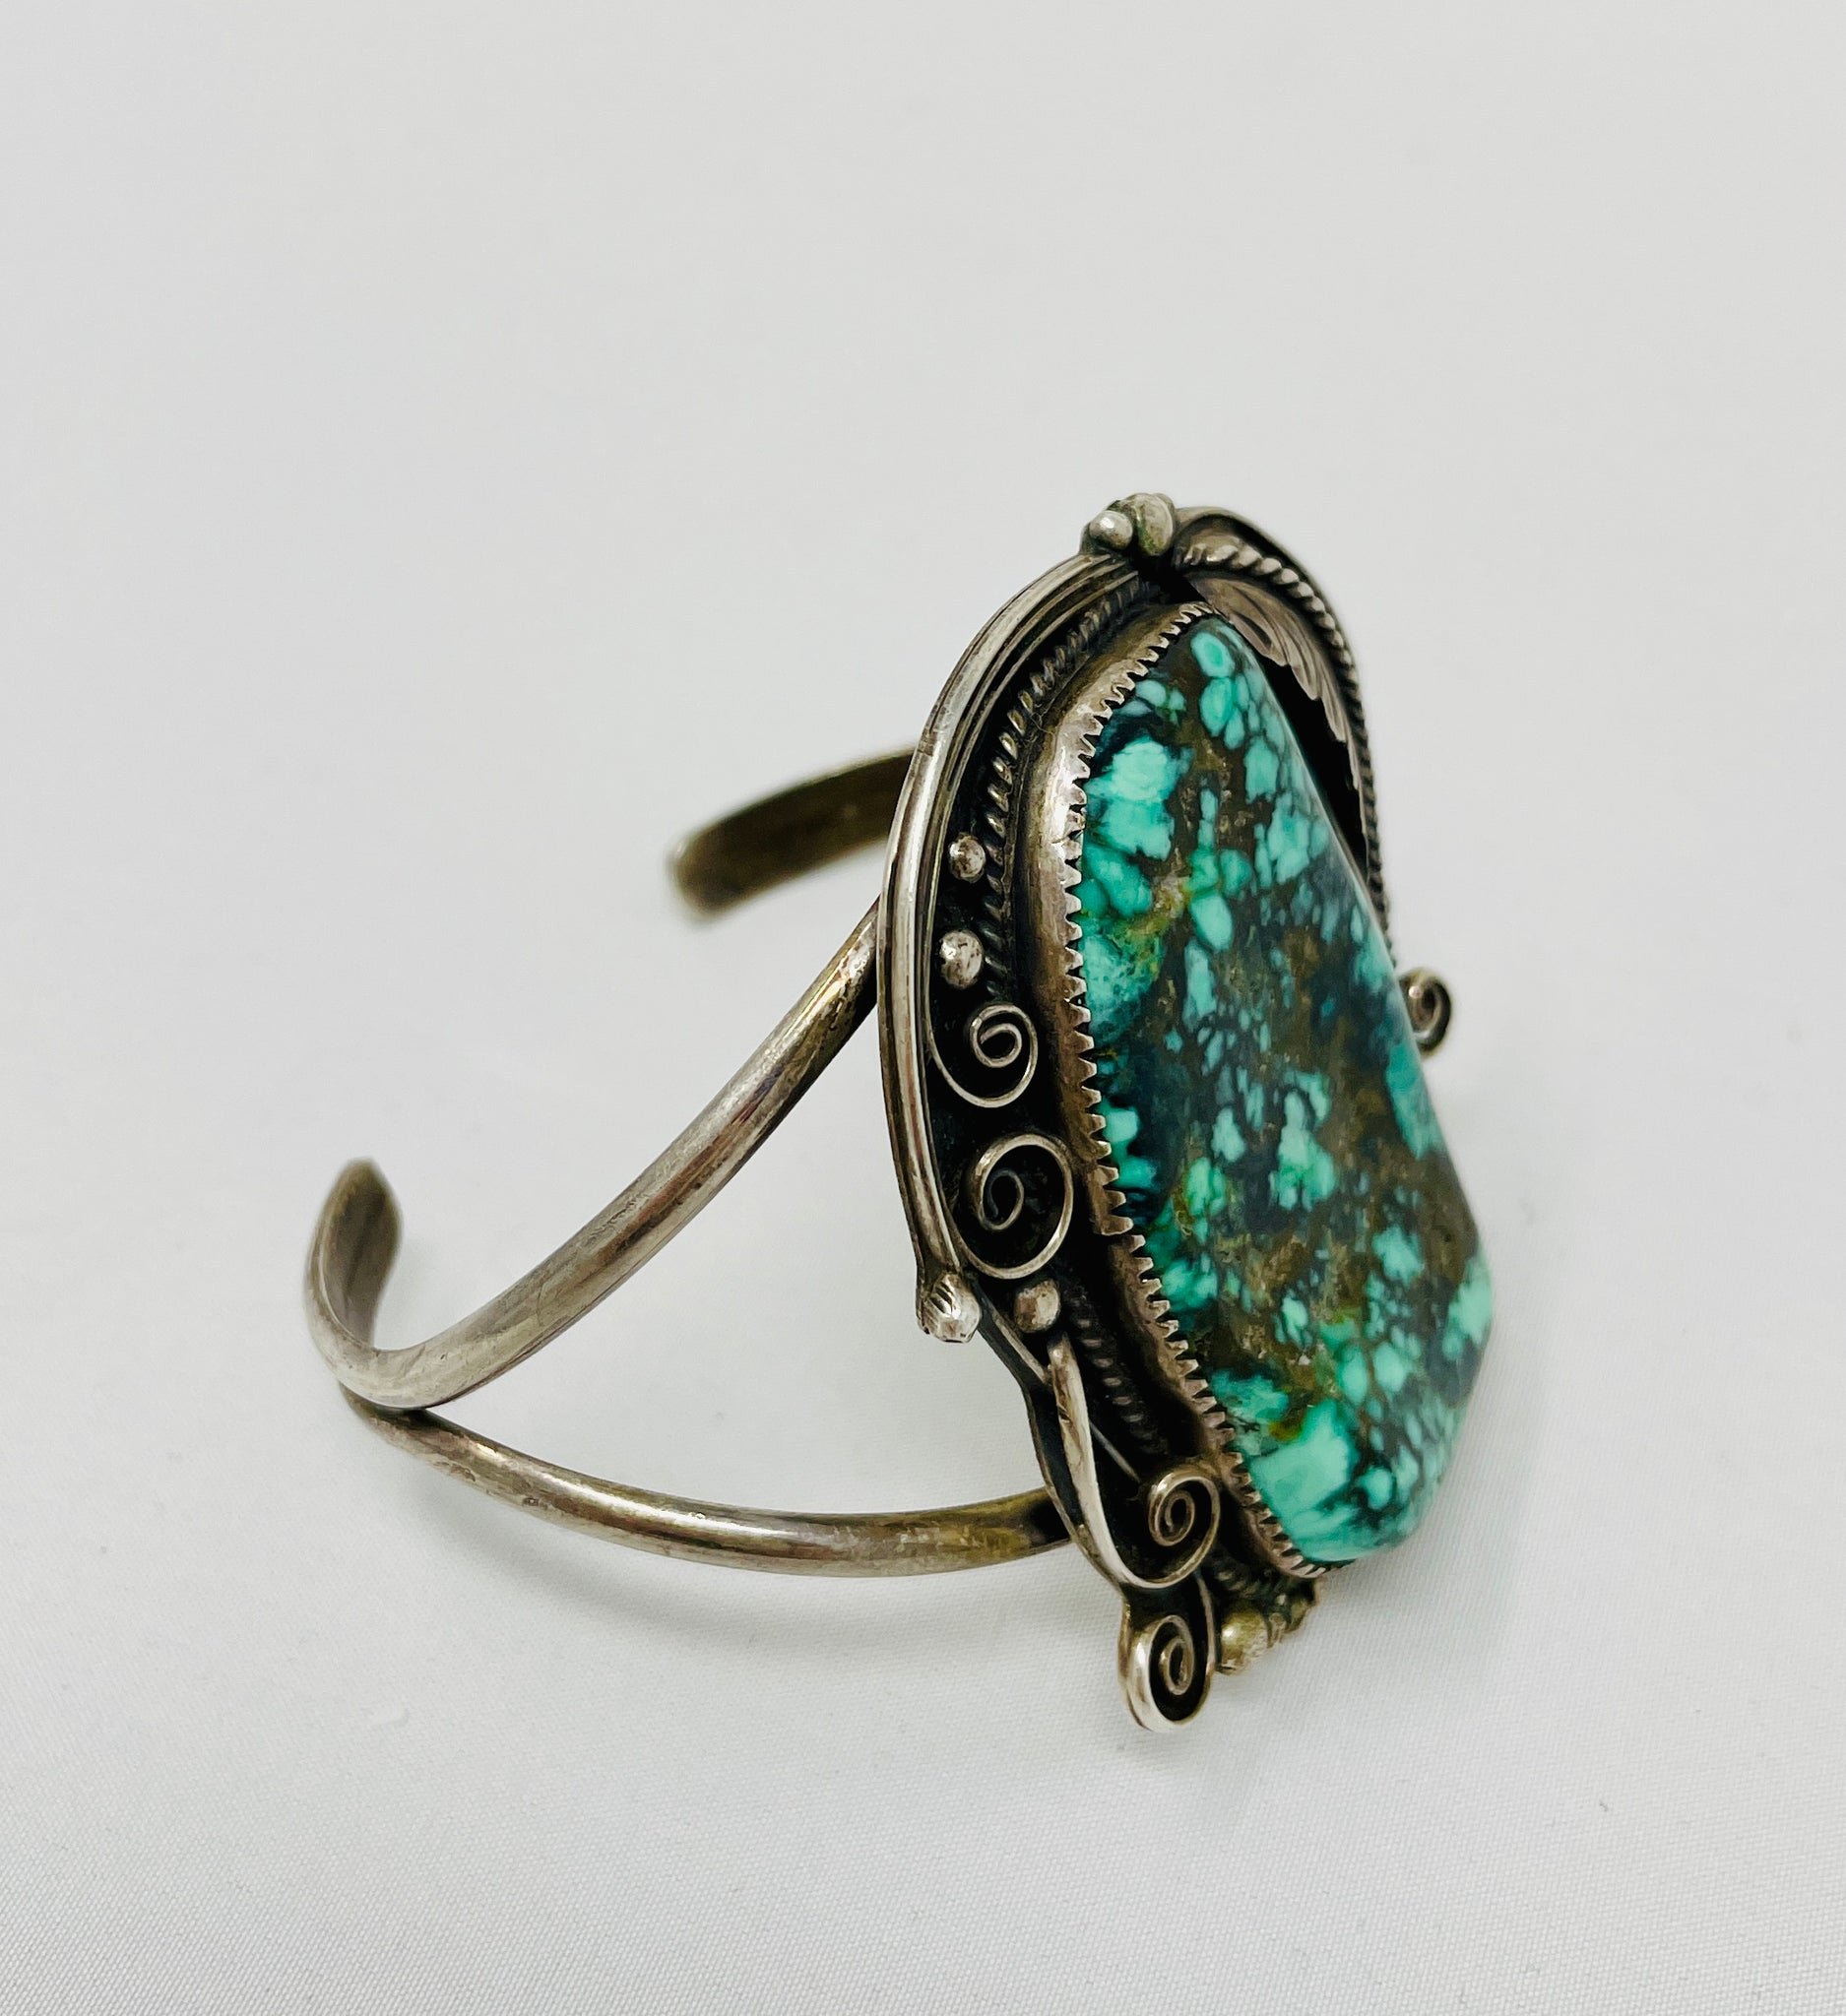 Heavy Navajo Cuff with Raindrops and Stampwork on Leaves Surrounding Stunning Turquoise Stone